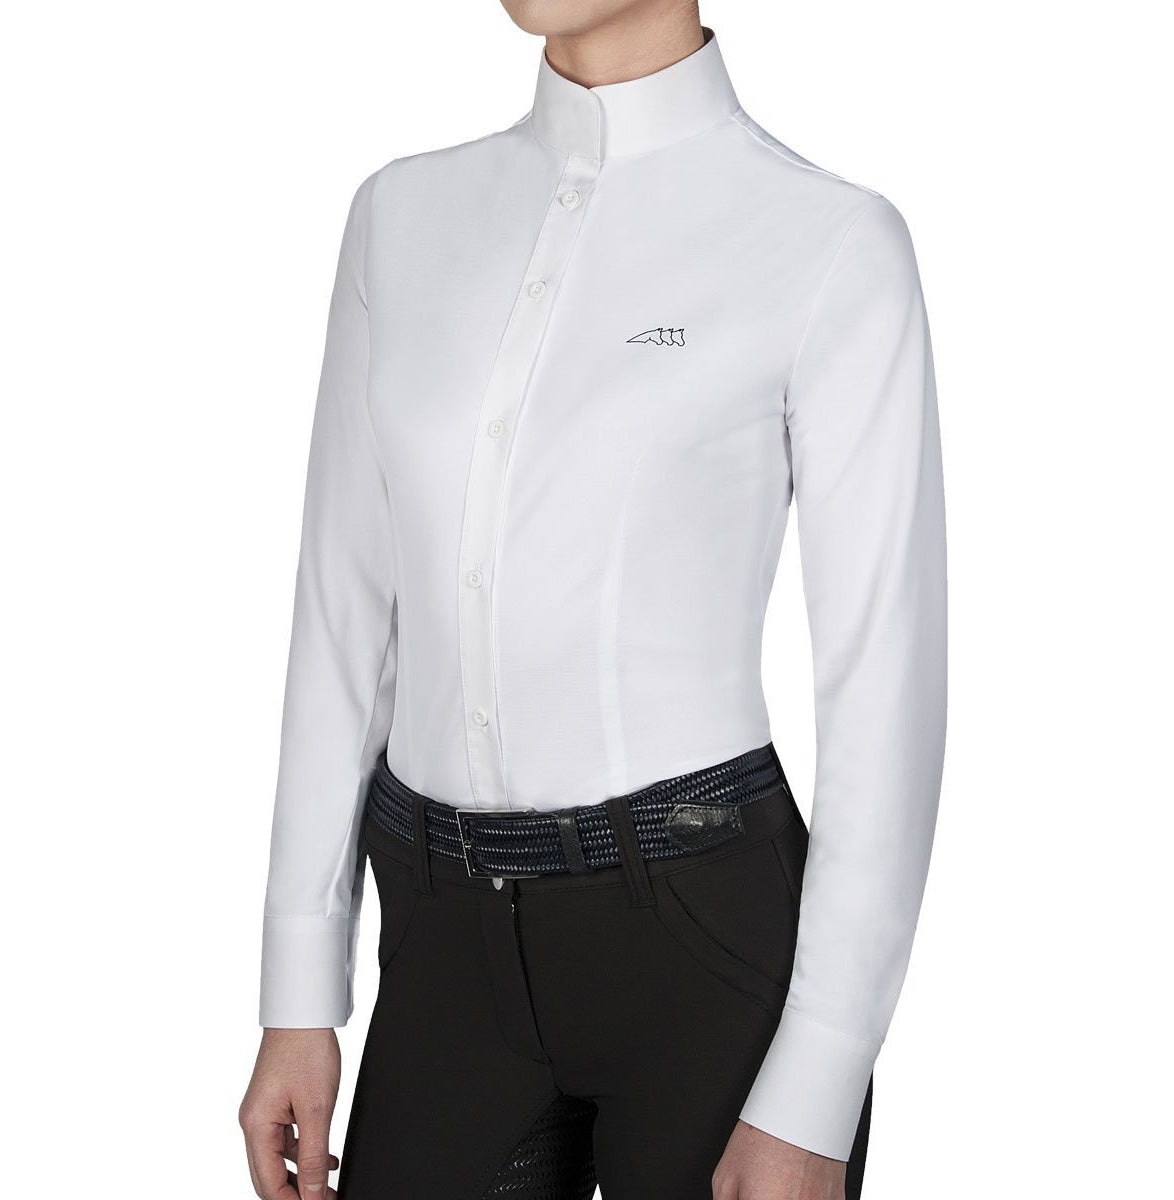 Equiline Victoria Show Shirt - SALE - North Shore Saddlery